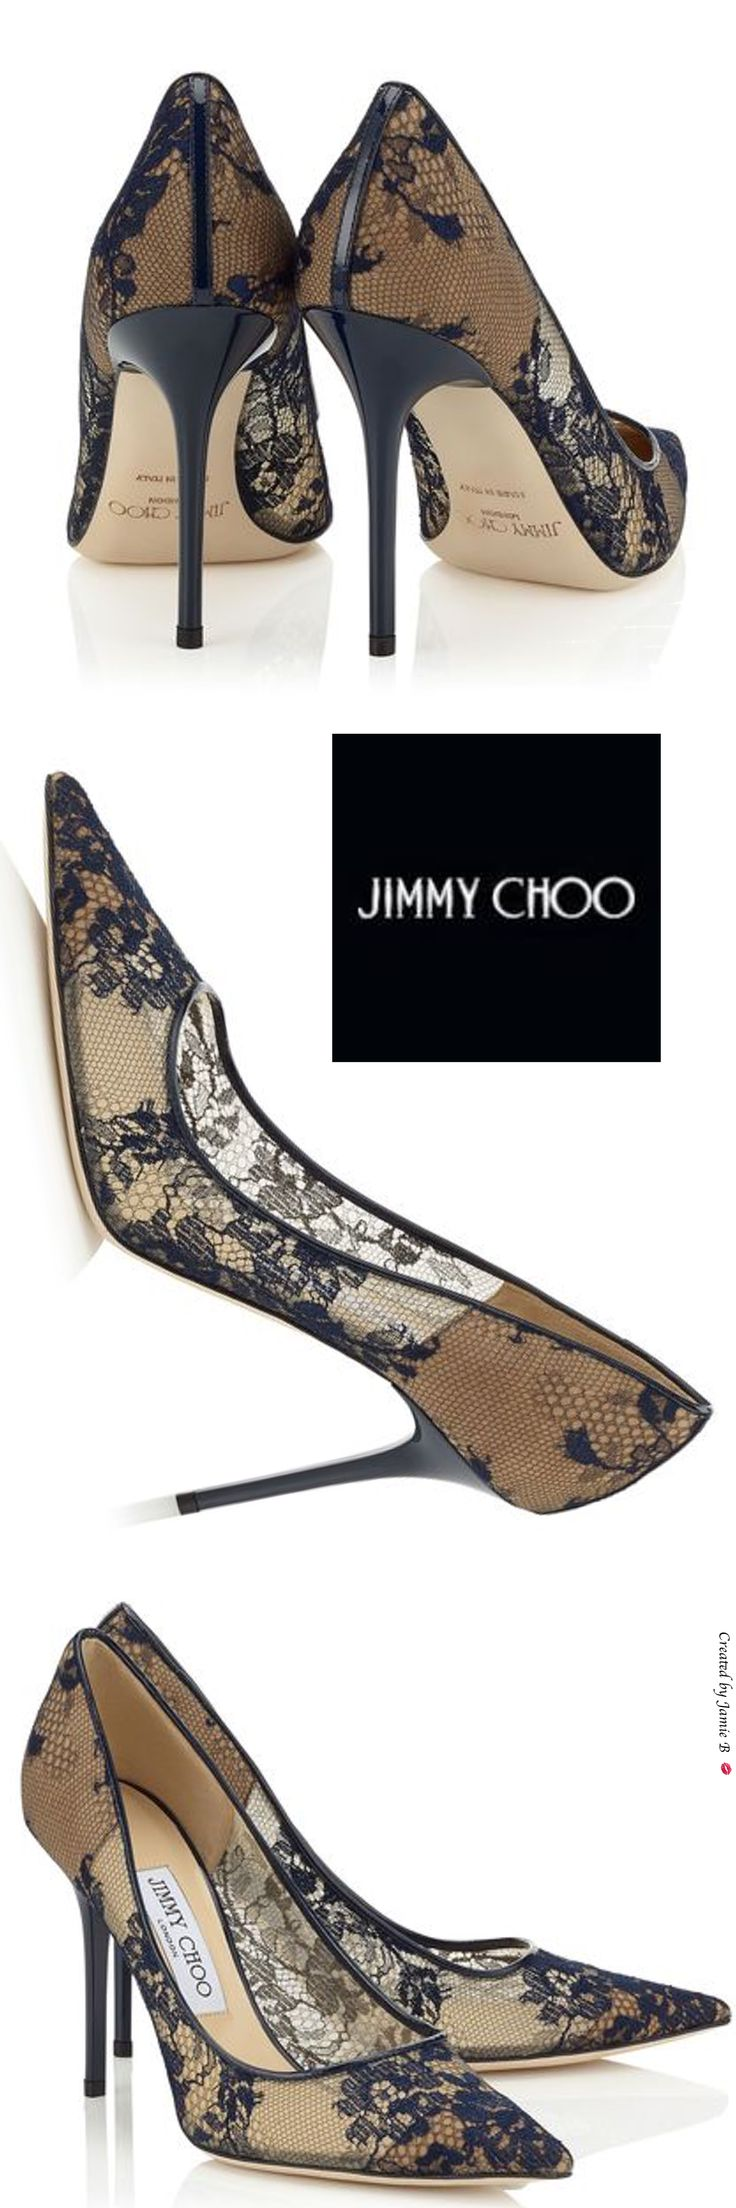 jimmy choo outlet - 736×2208